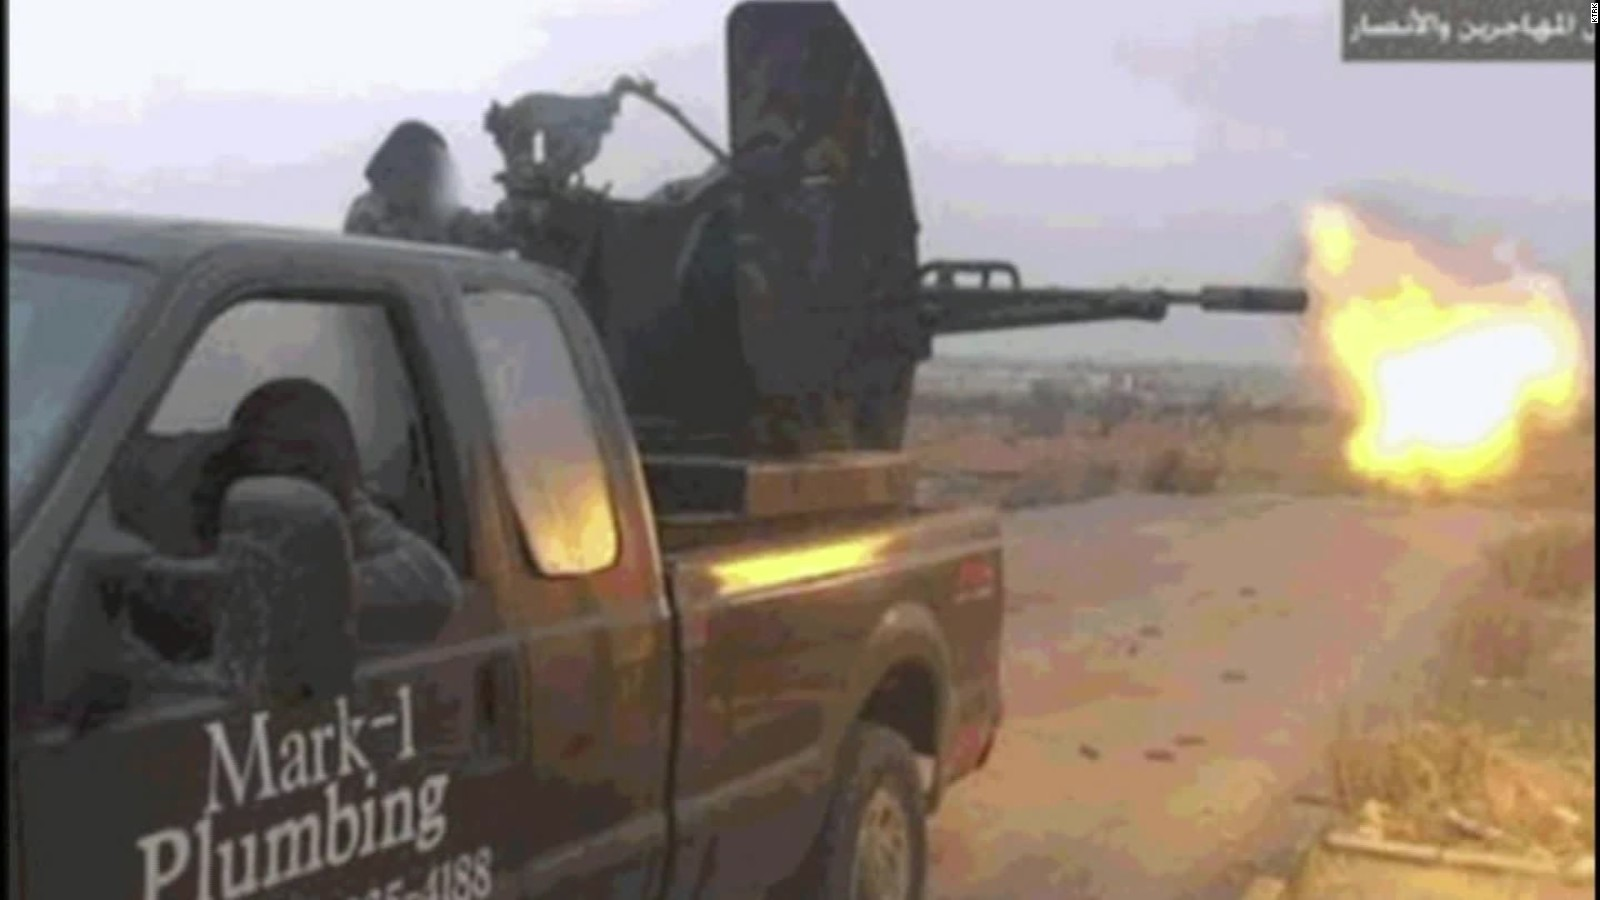 Plumber sues auctioneer after truck shown with terrorists - CNN